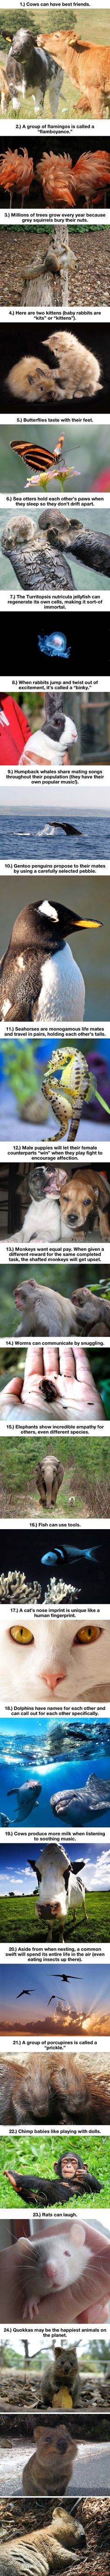 24 Awesome Things You Didn't Know About Animals